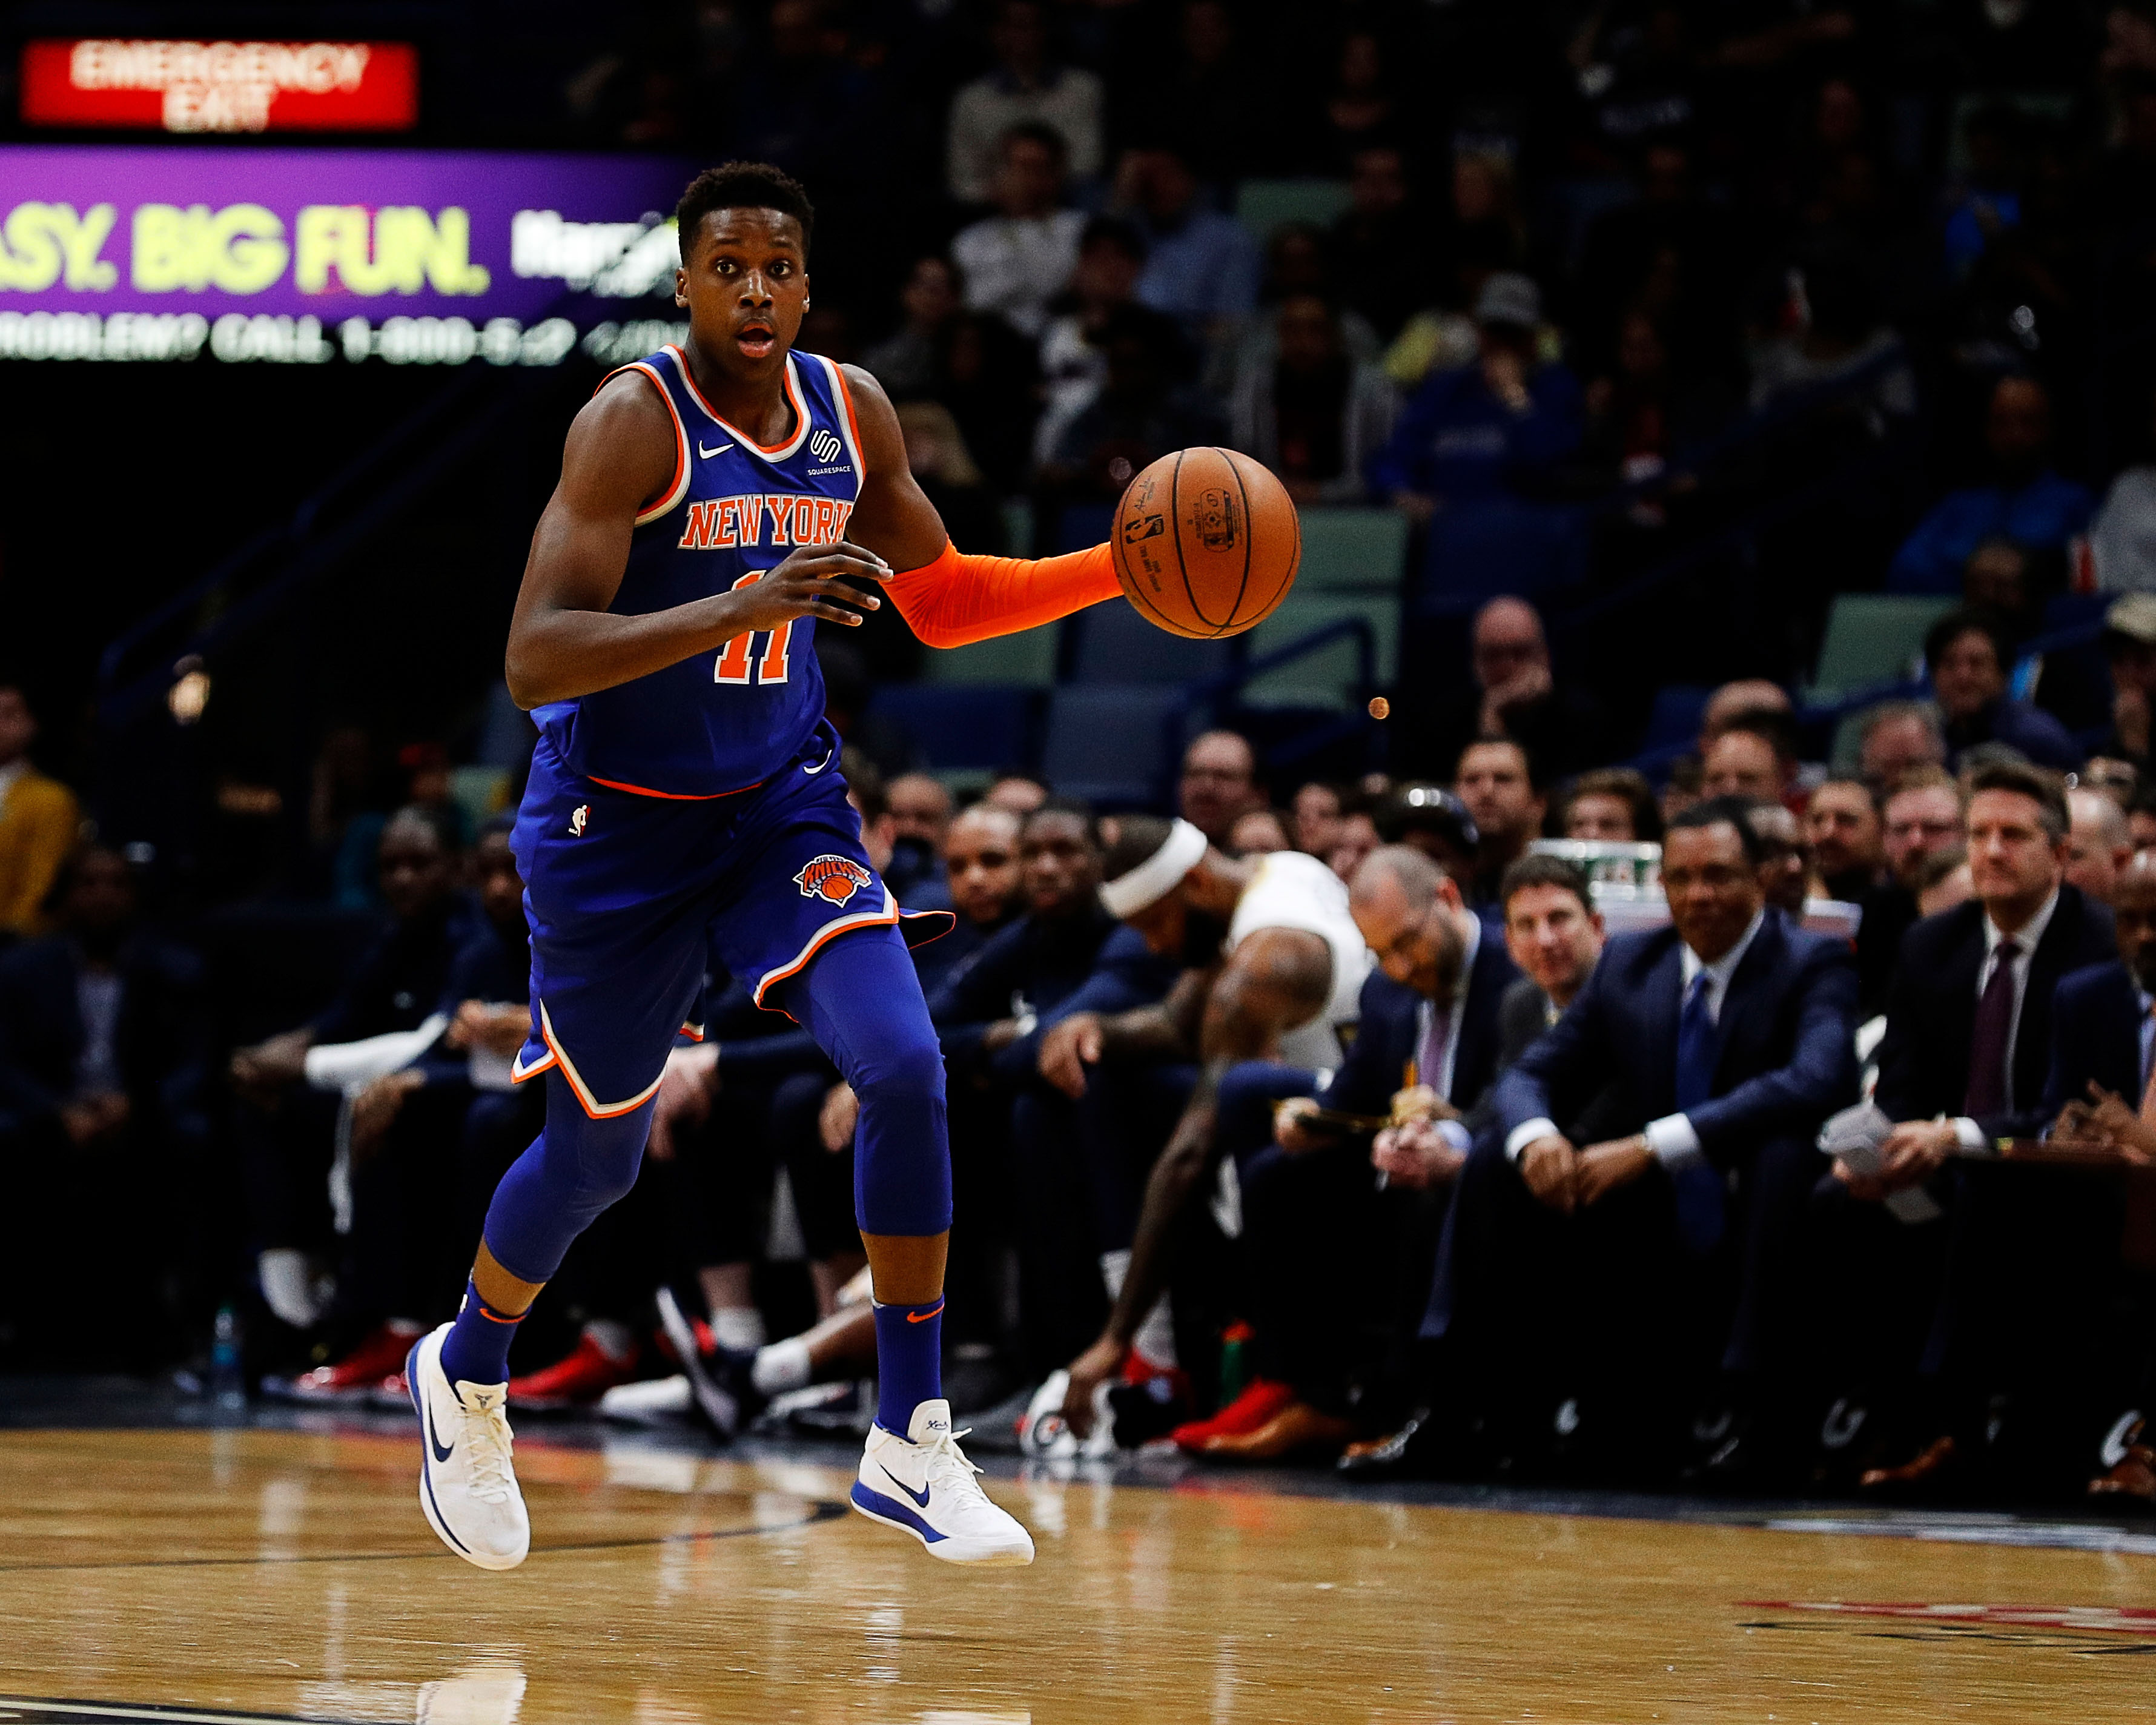 Frank Ntilikina and Michael Beasley Boost Knicks Over Nets